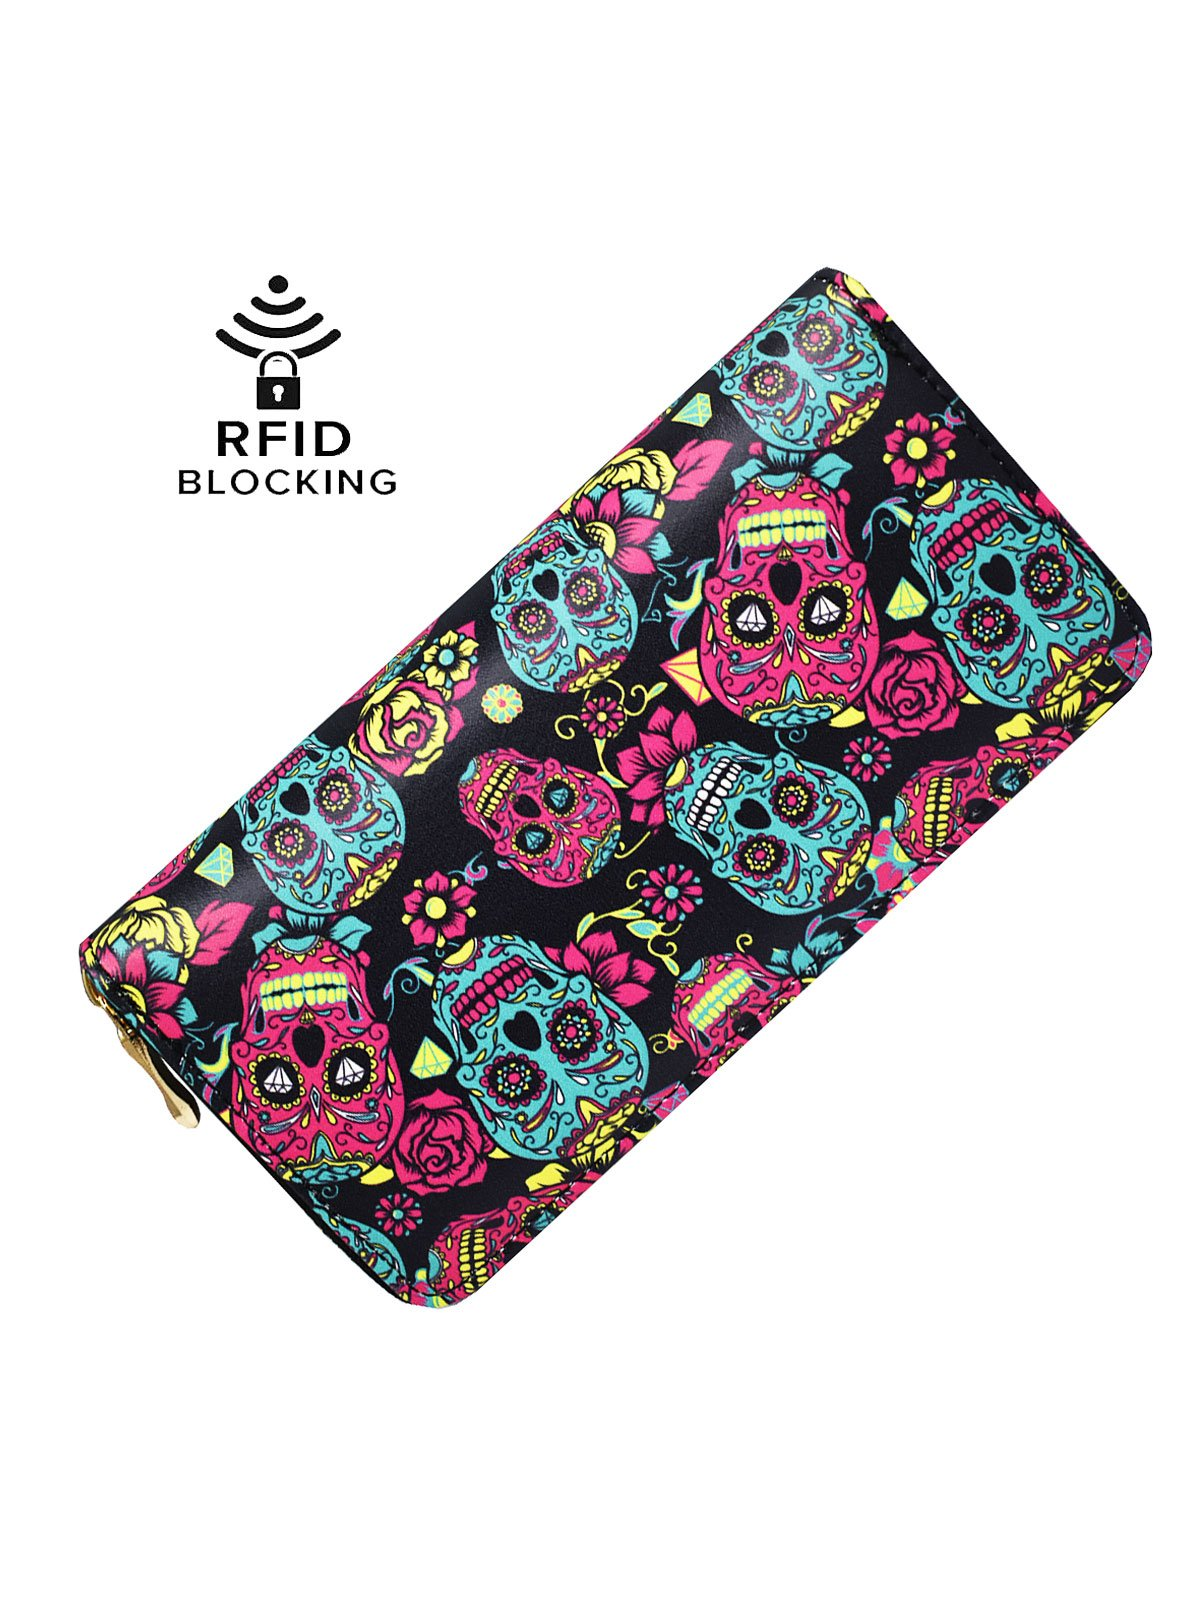 LAIMIDUO Women's Skull Wallet Gothic Leather RFID Blocking Purse Clutch Multi Card Holder Gift for Lady